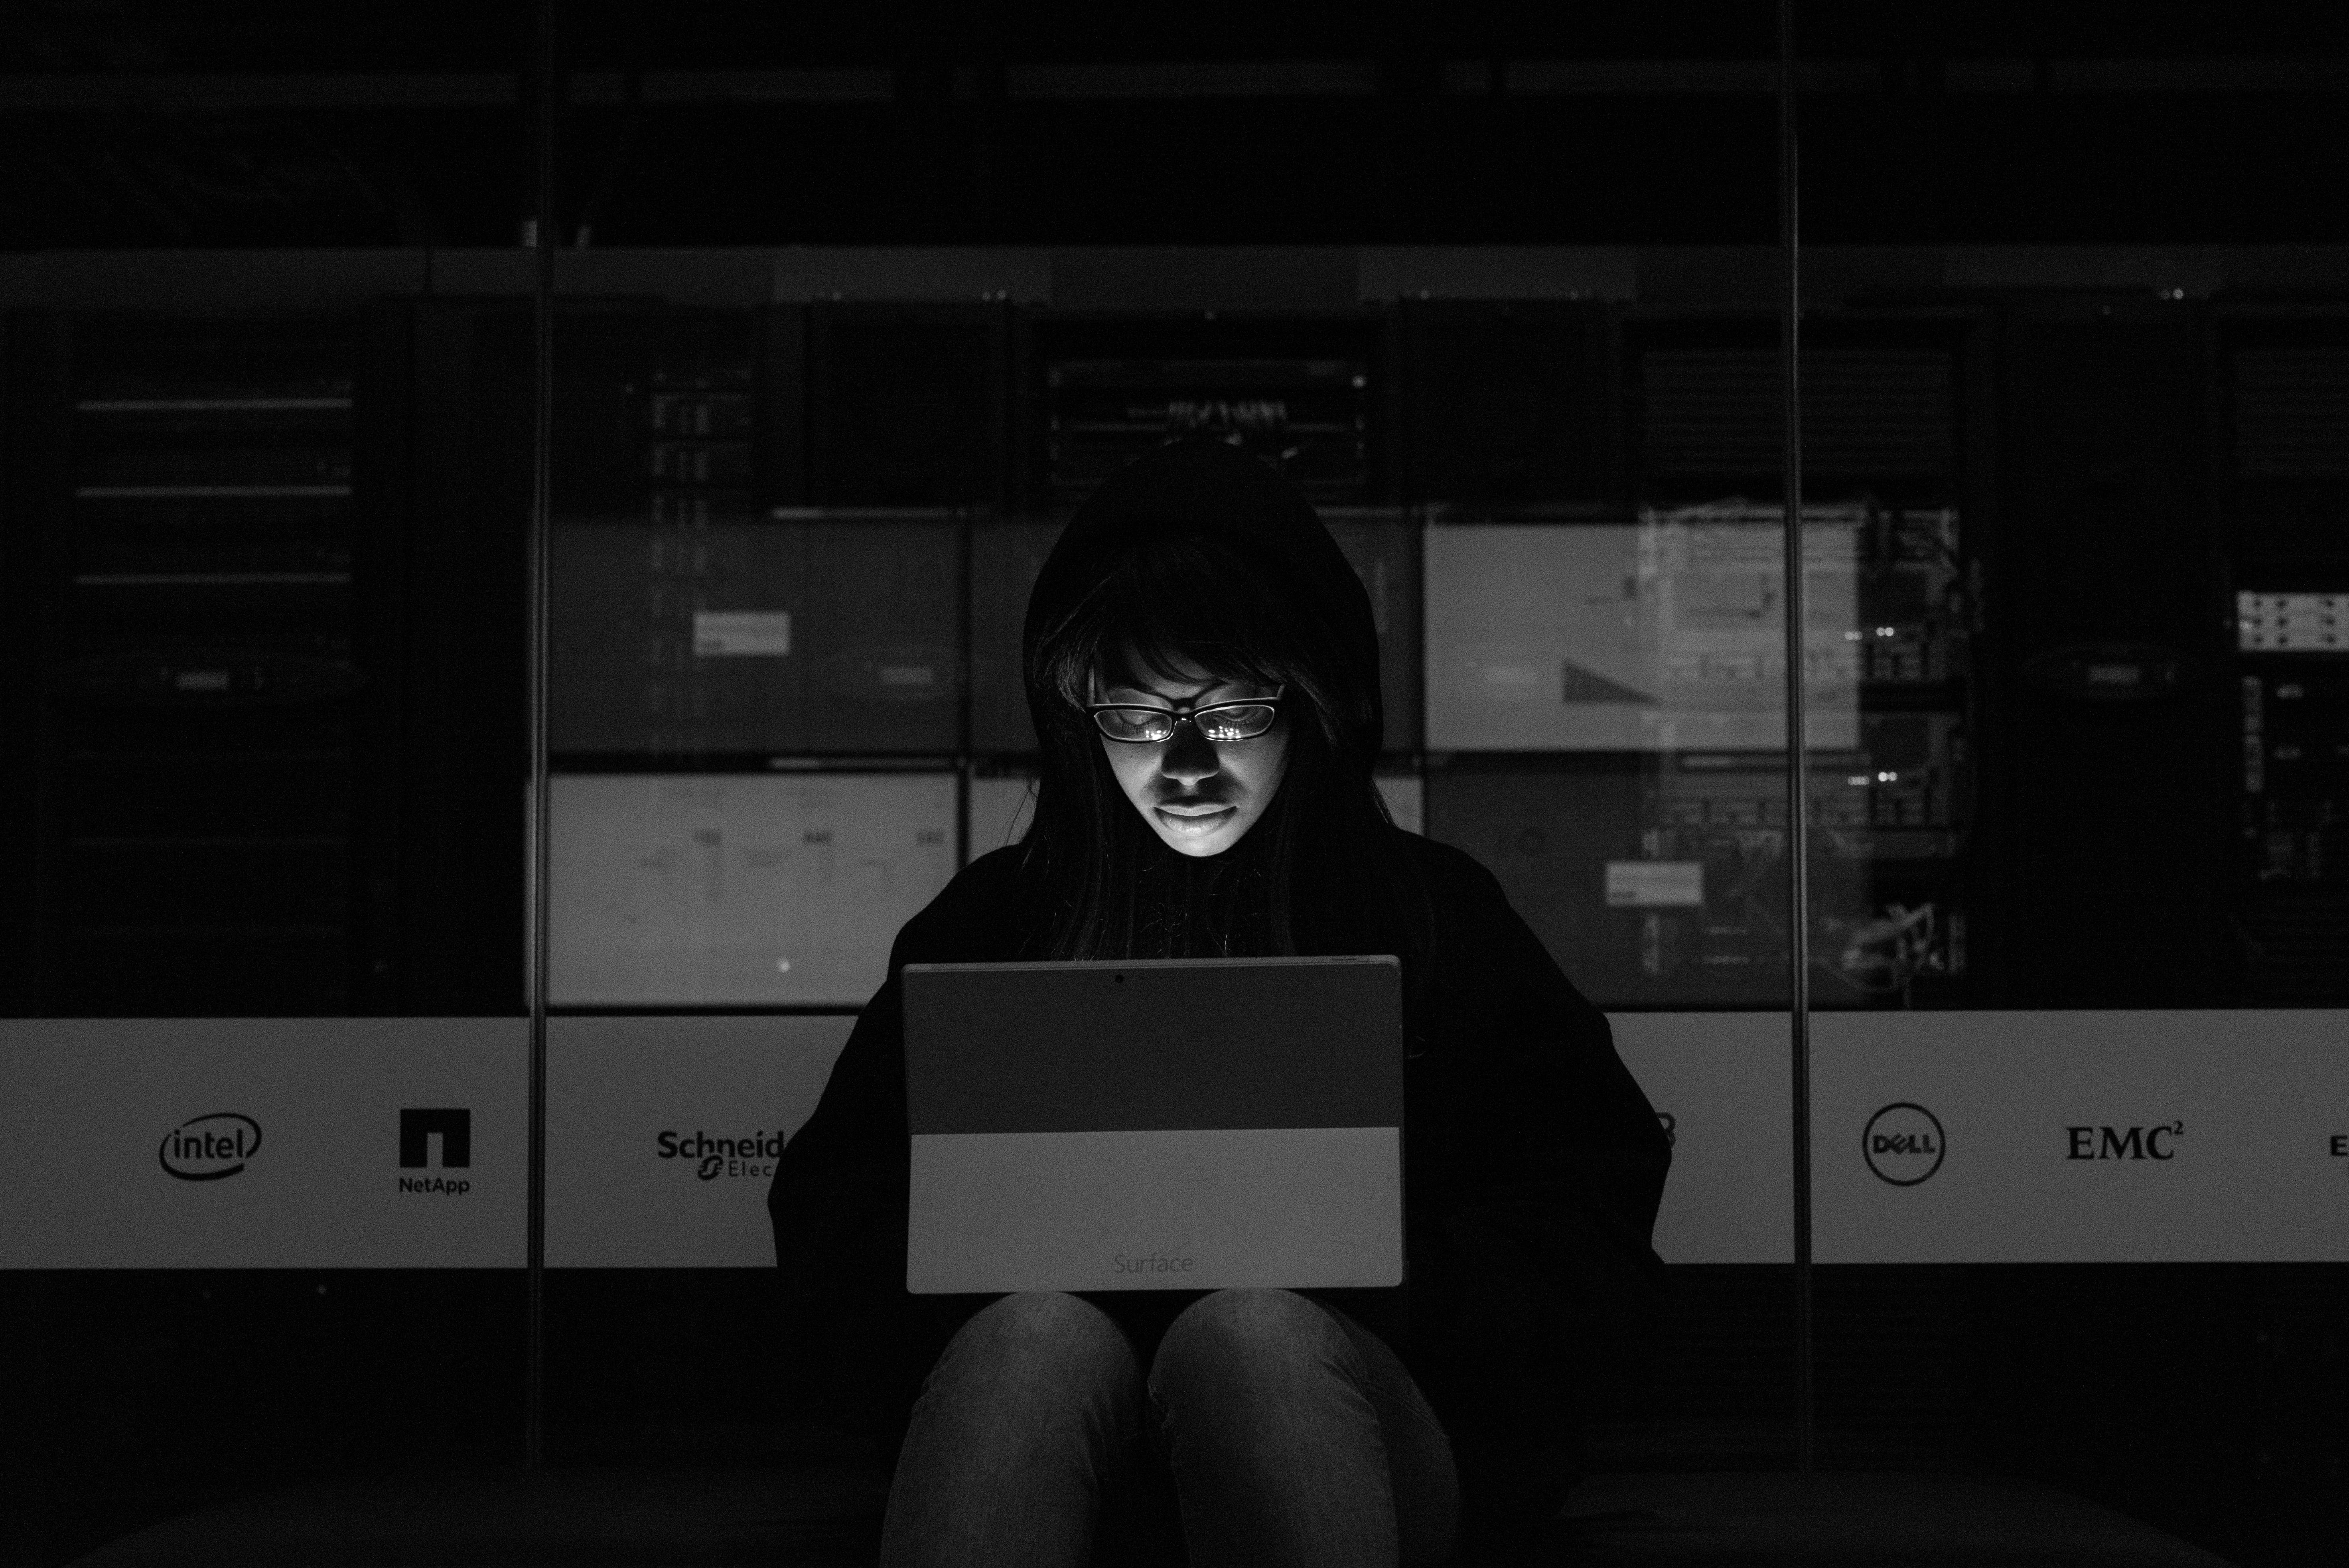 Gray scale Photograph of a Woman using a Laptop